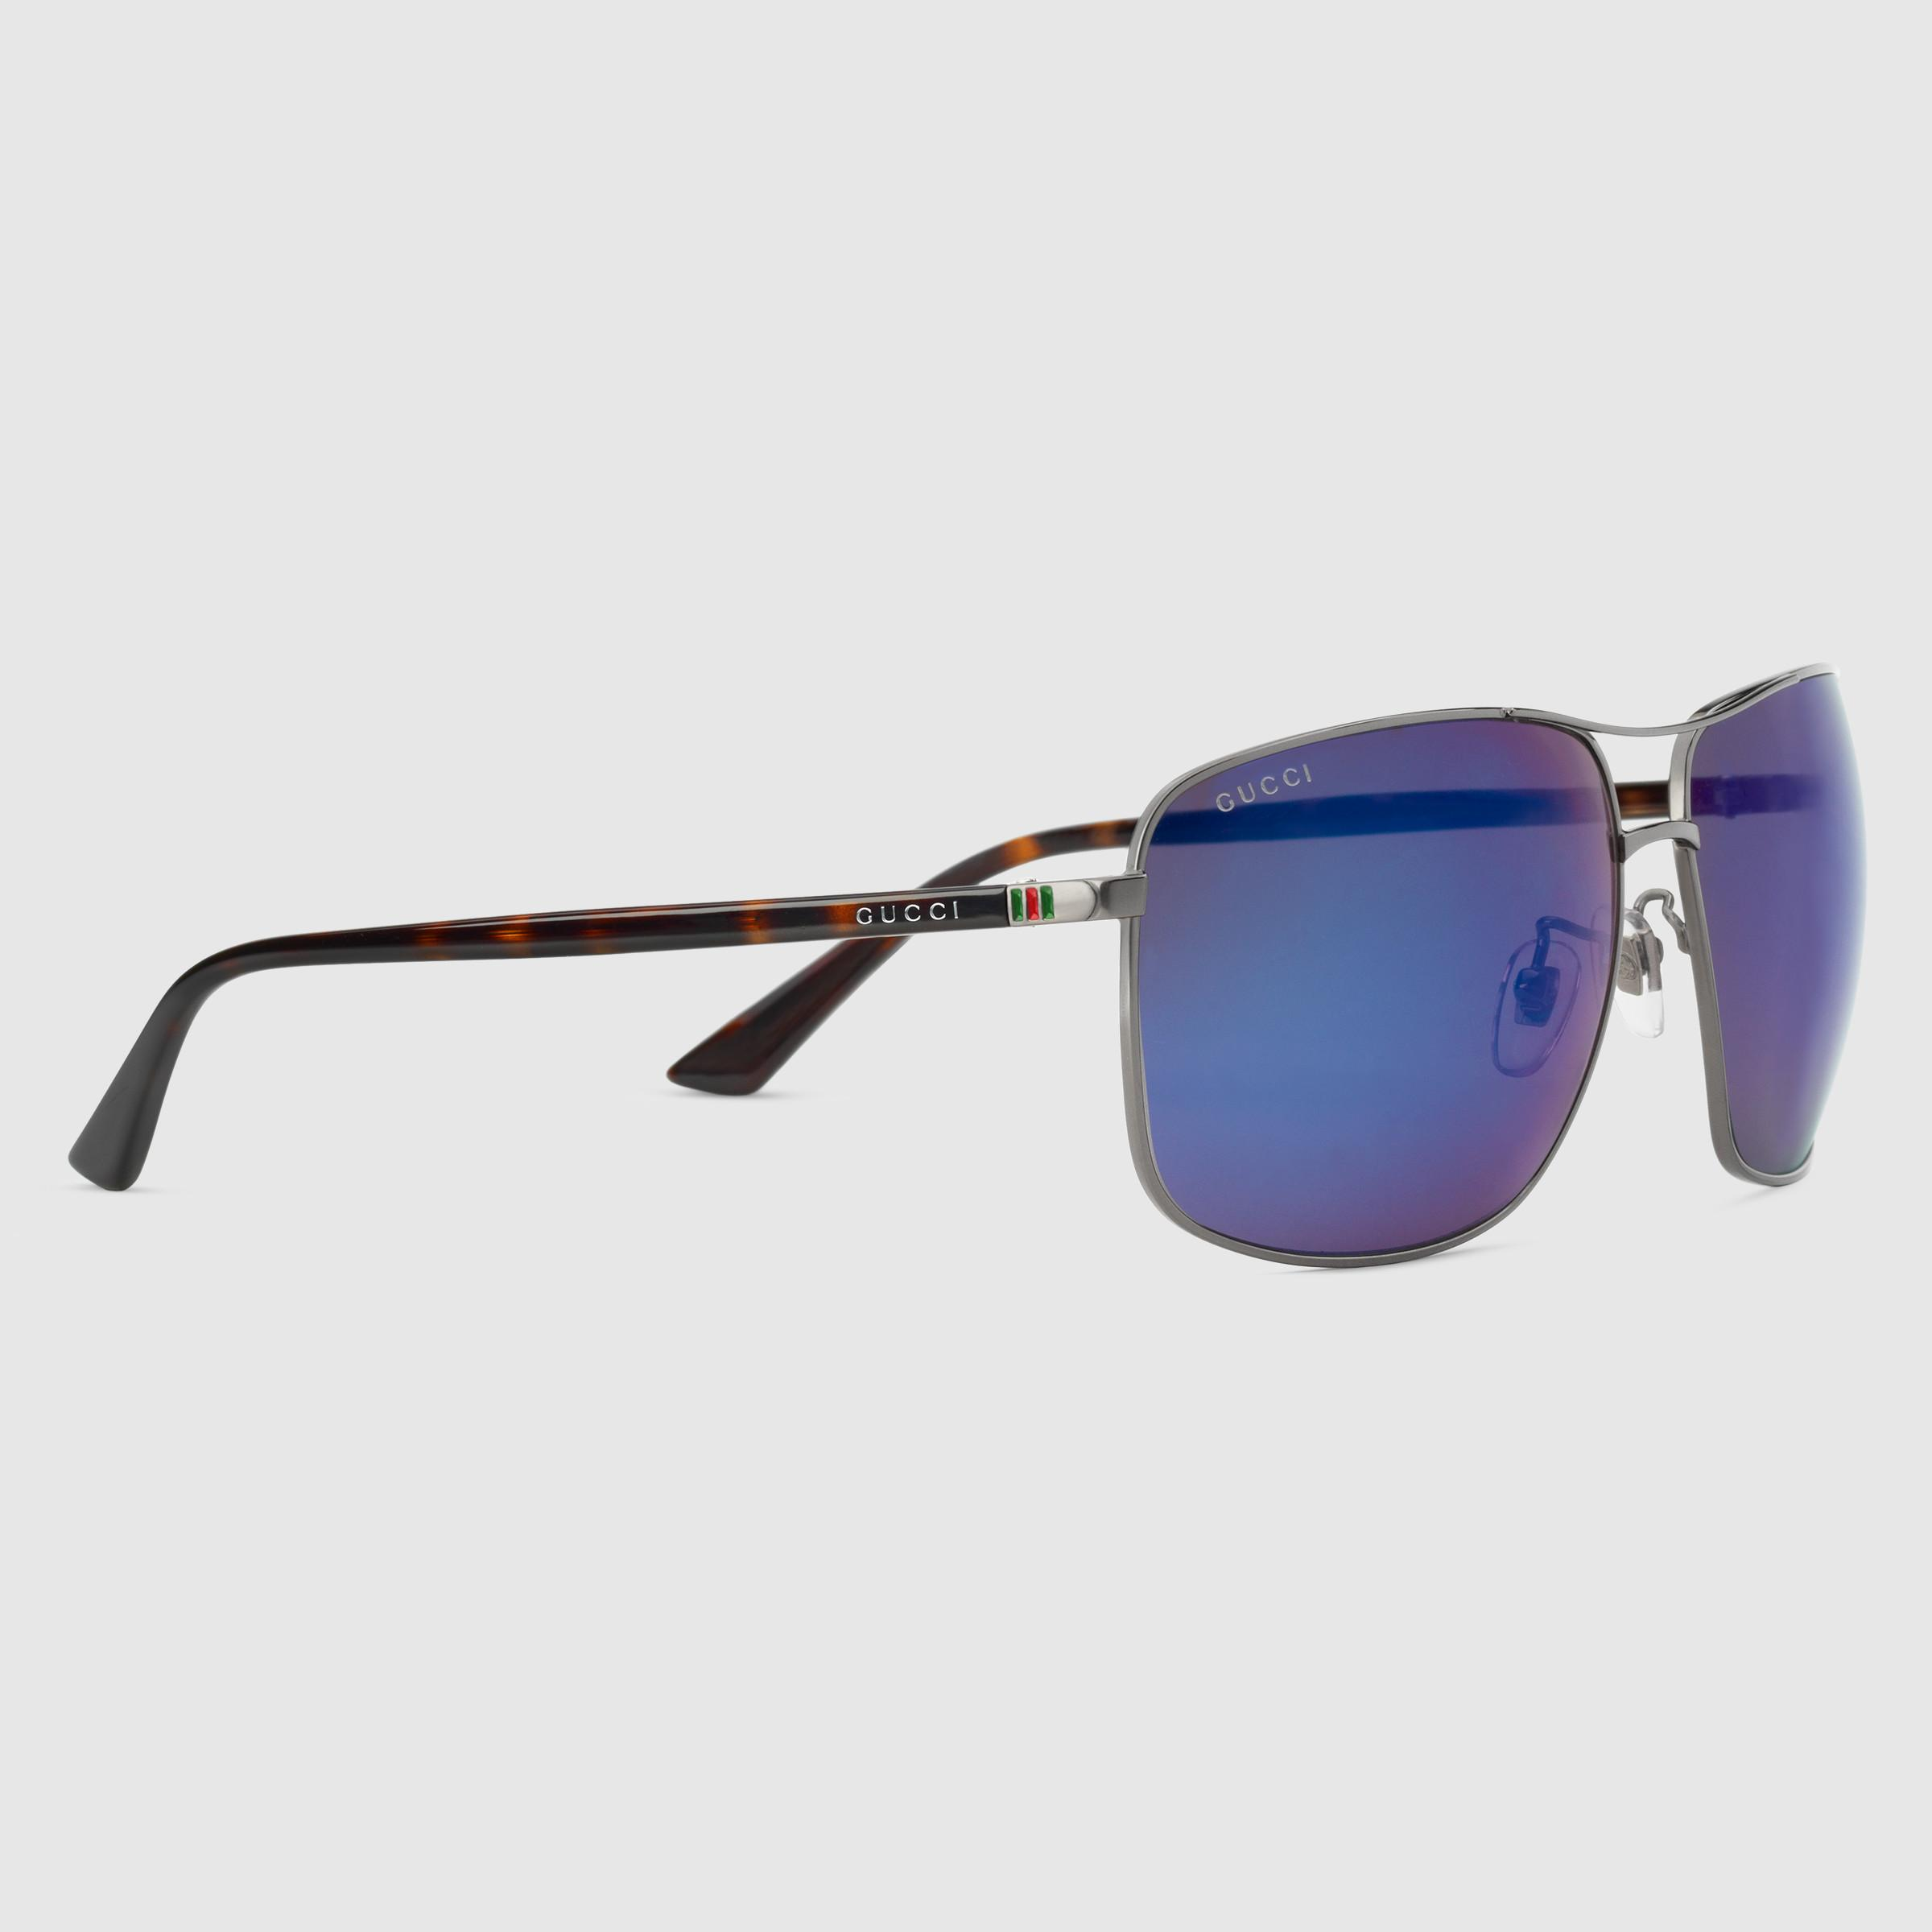 c69df37705 Lyst - Gucci Square-frame Metal Sunglasses in Blue for Men